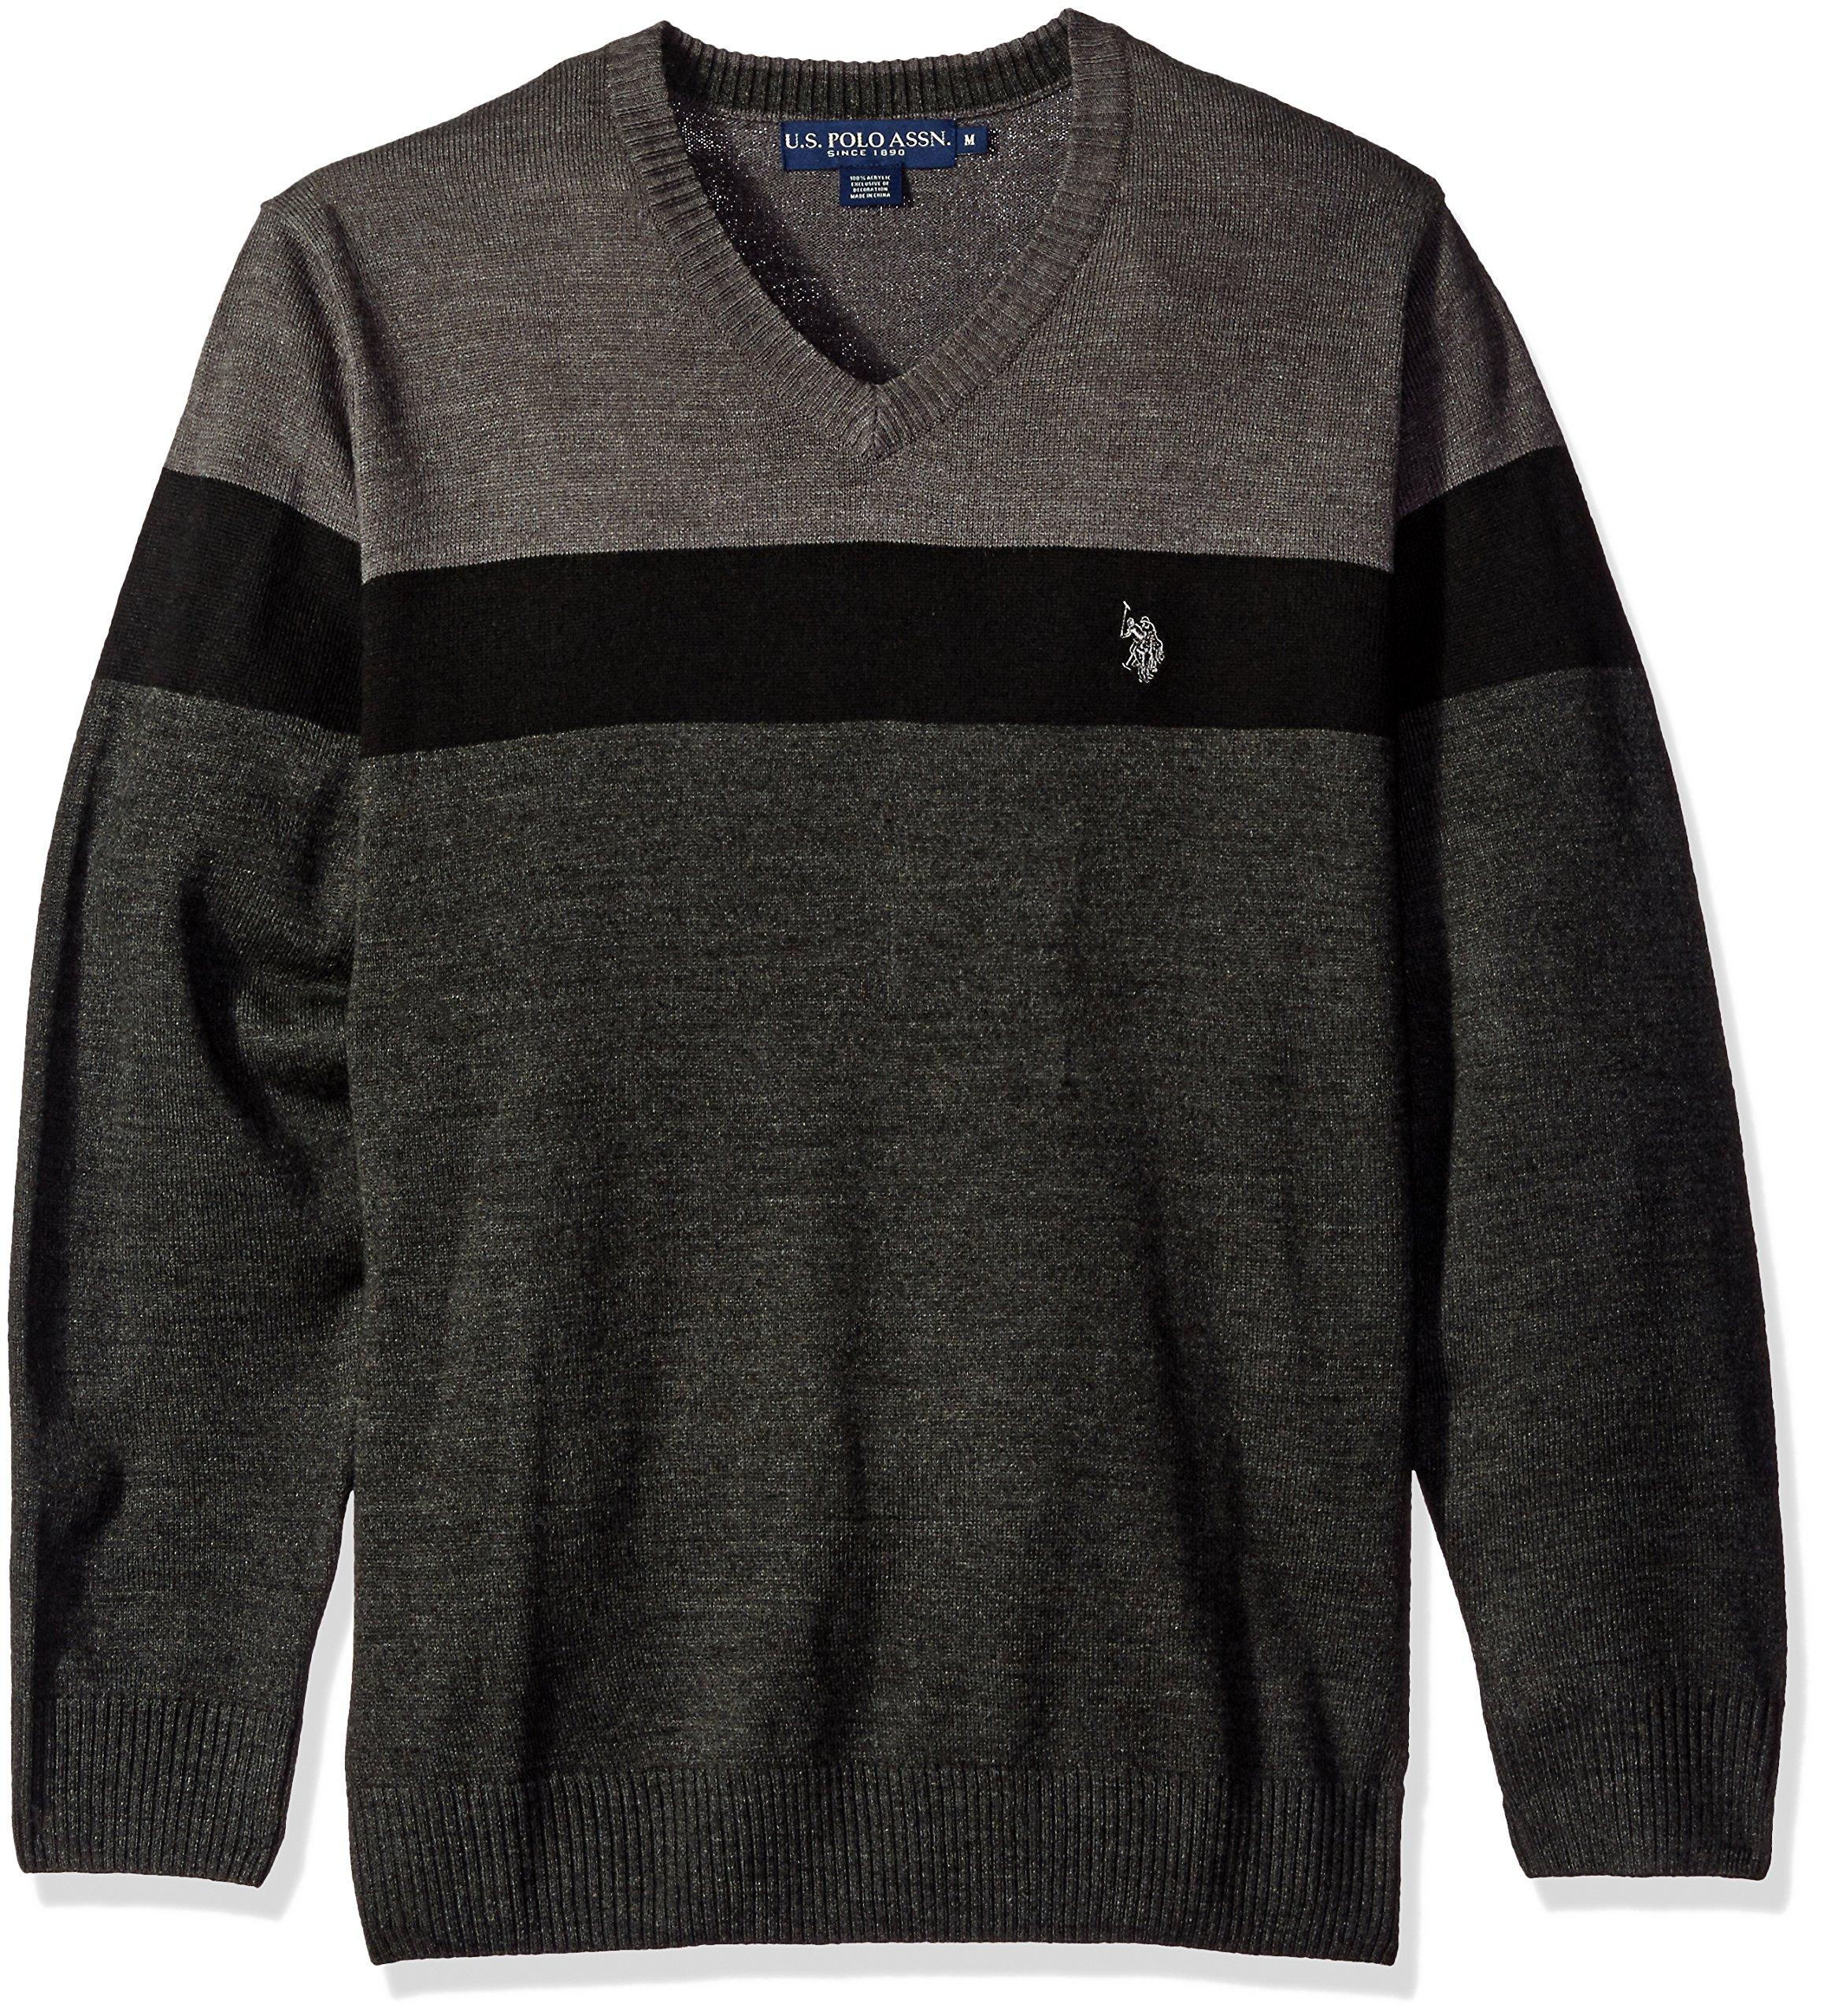 U.S. Polo Assn. Men's All Over Stripe V-Neck Sweater, Charcoal Heather, Small